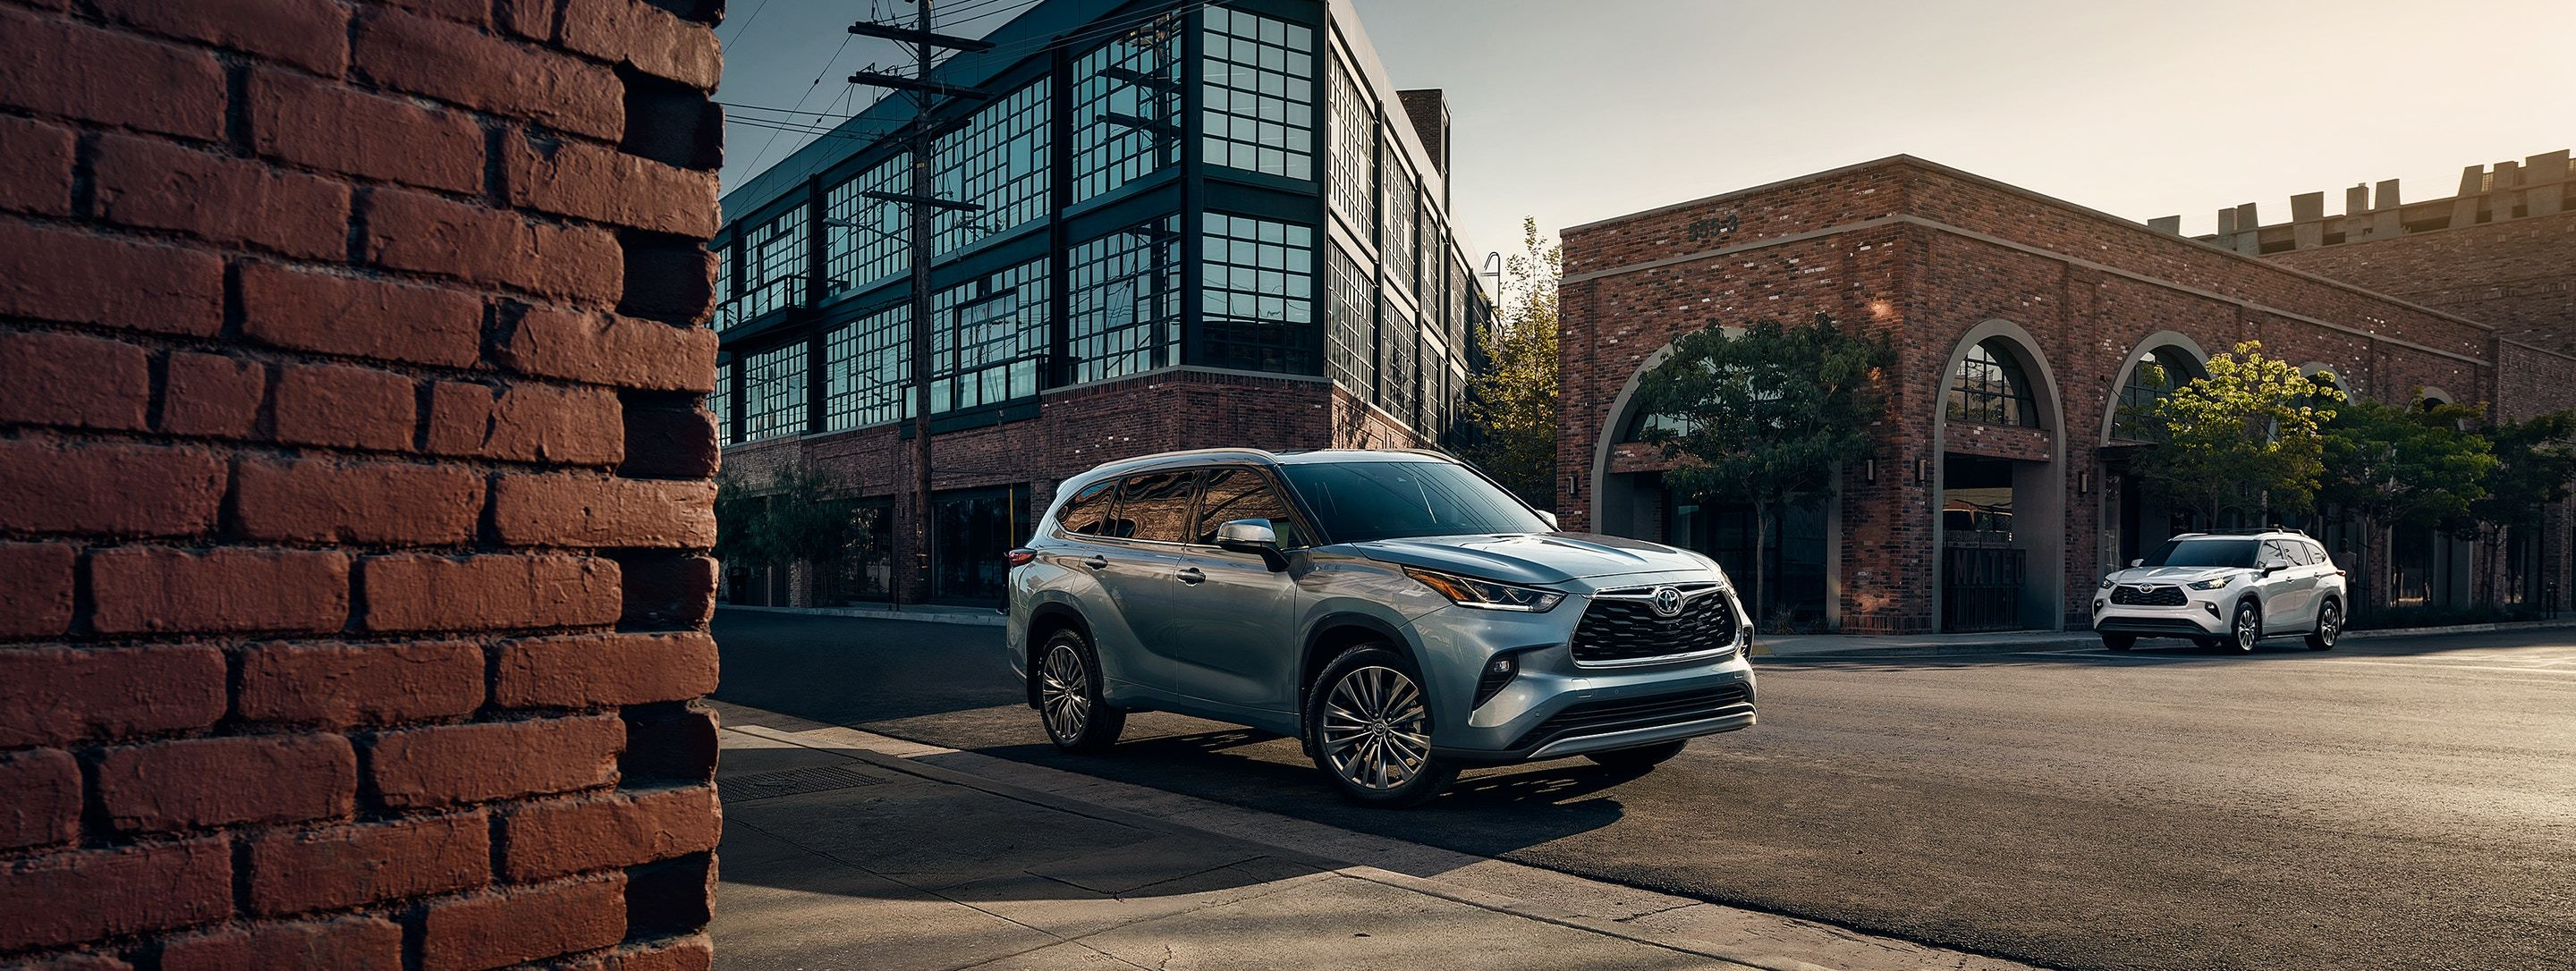 2020 Toyota Highlander for Sale in Lombard, IL